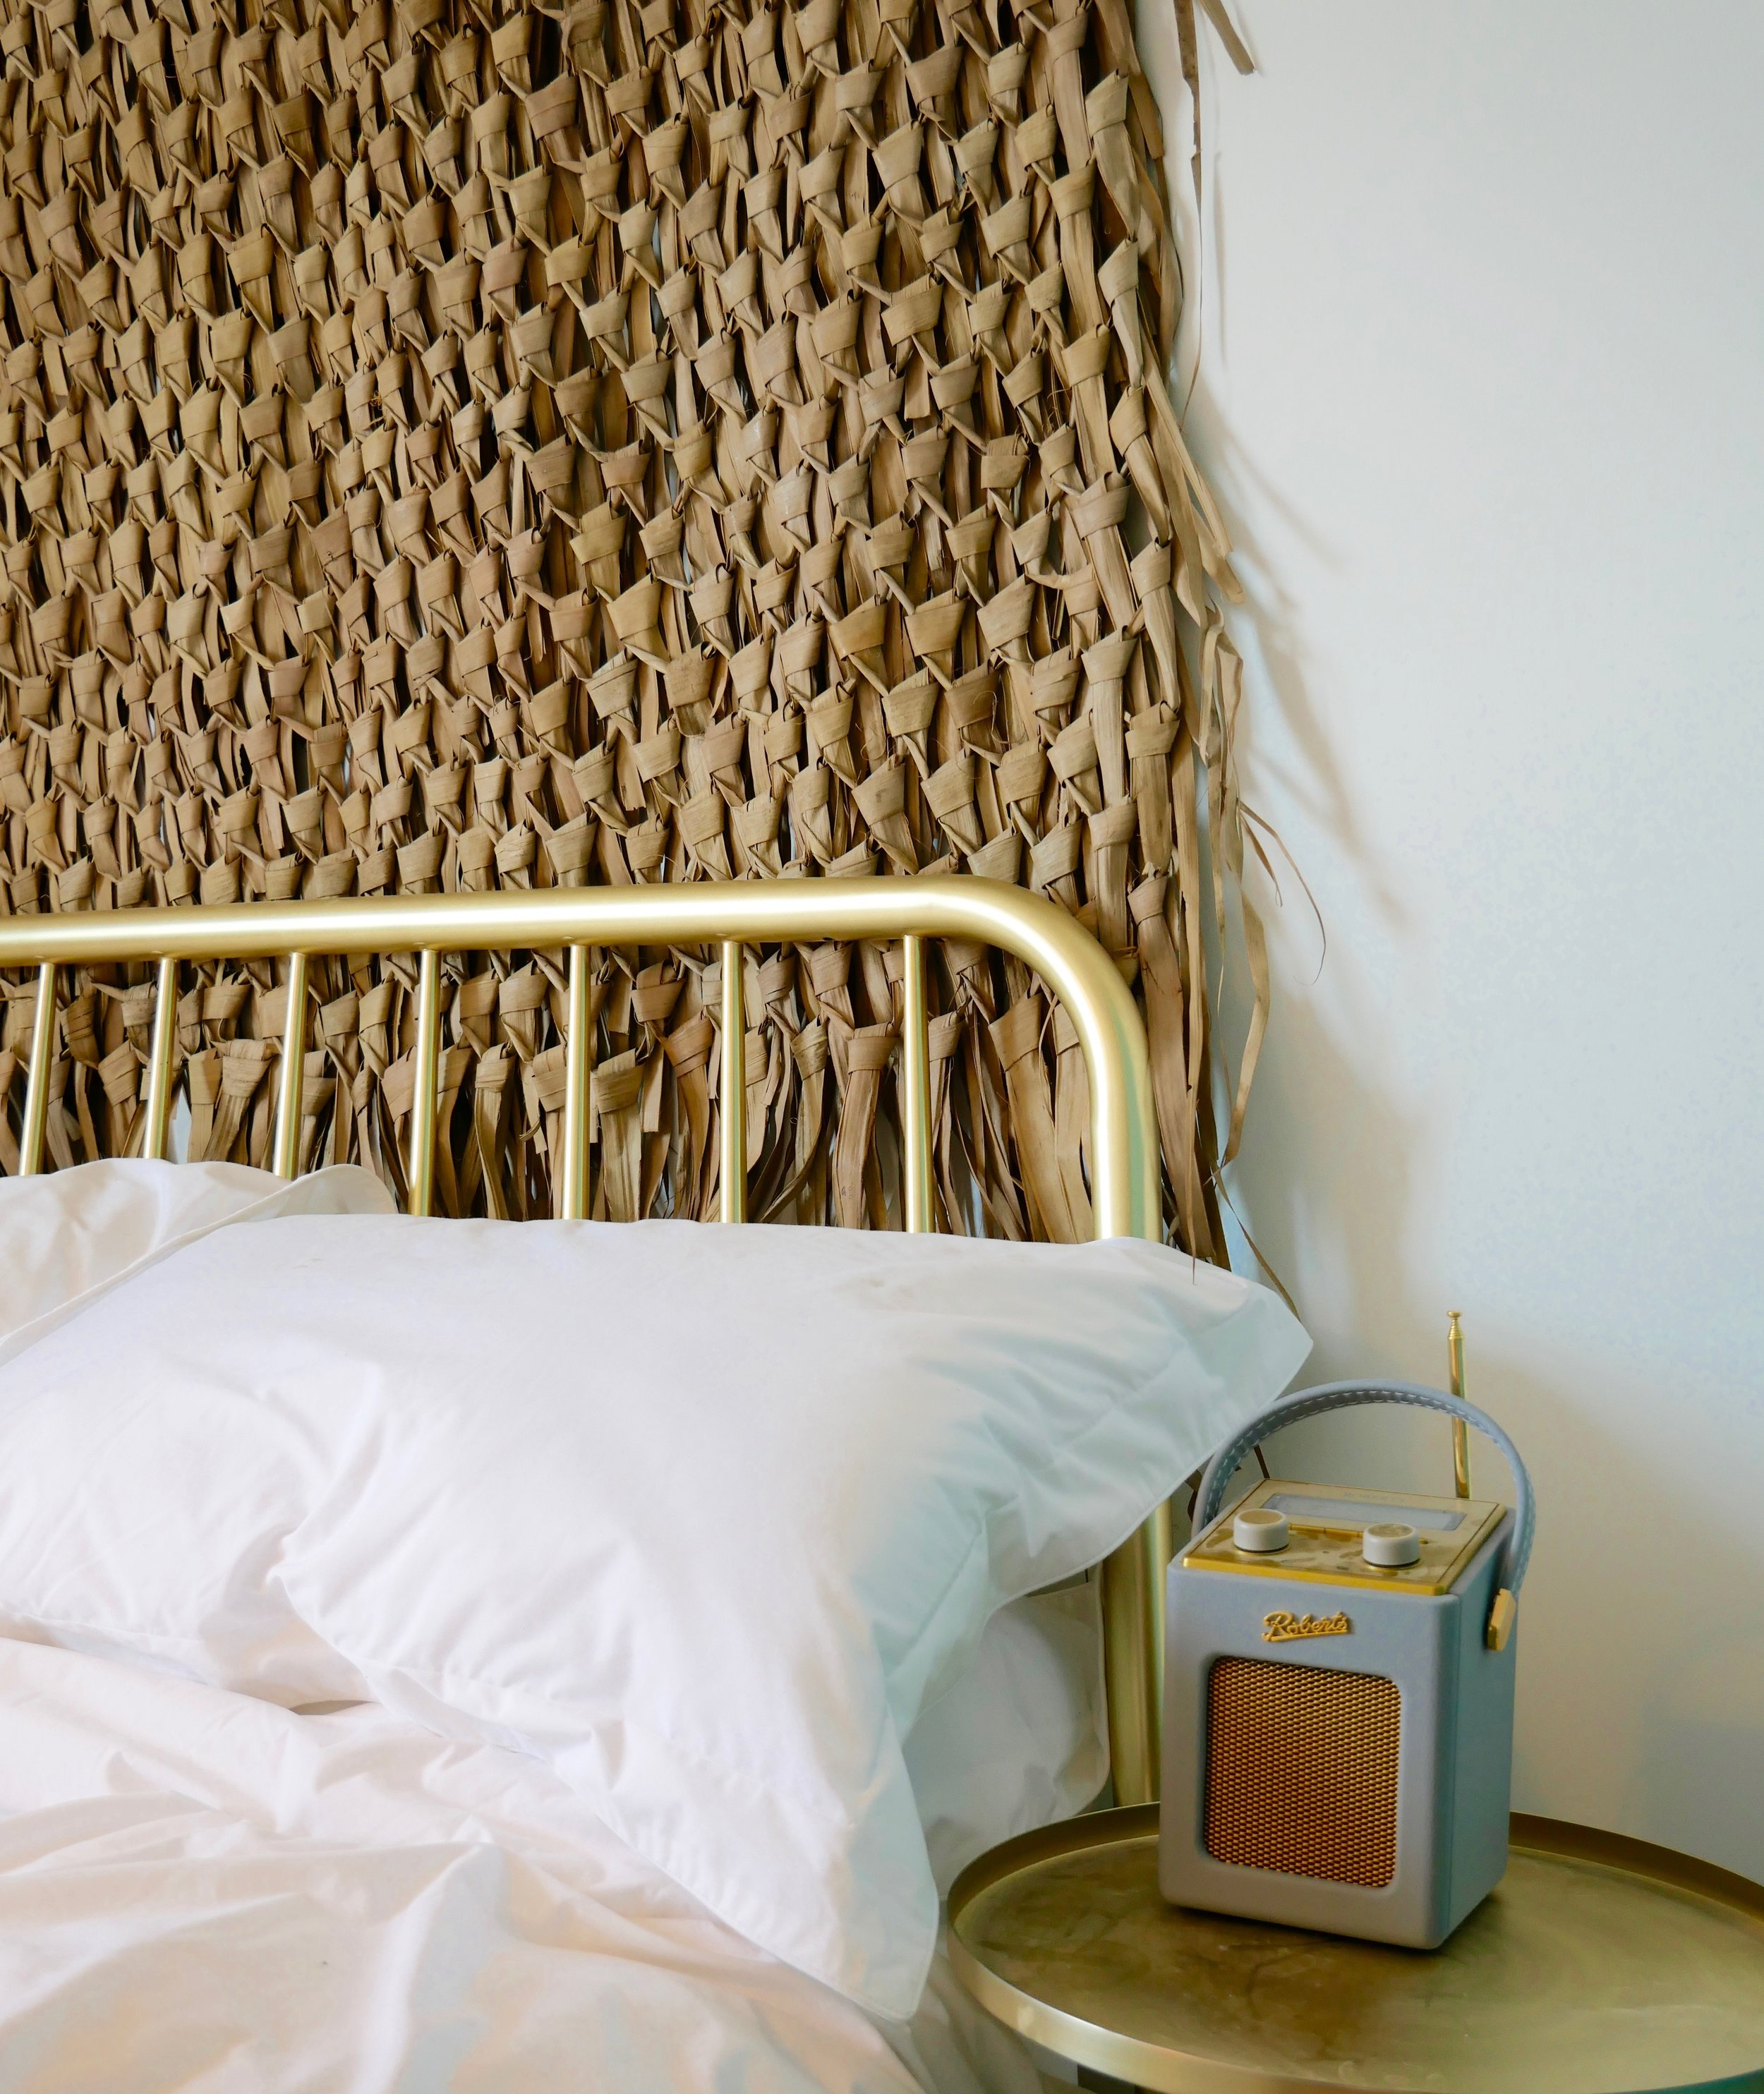 Bedroom Space - Two en-suite bedrooms are available for shoots. Luna has sea views and a roll top bath. Helios is inspired by the Greek islands with white linens, natural materials and plenty of sunlight.